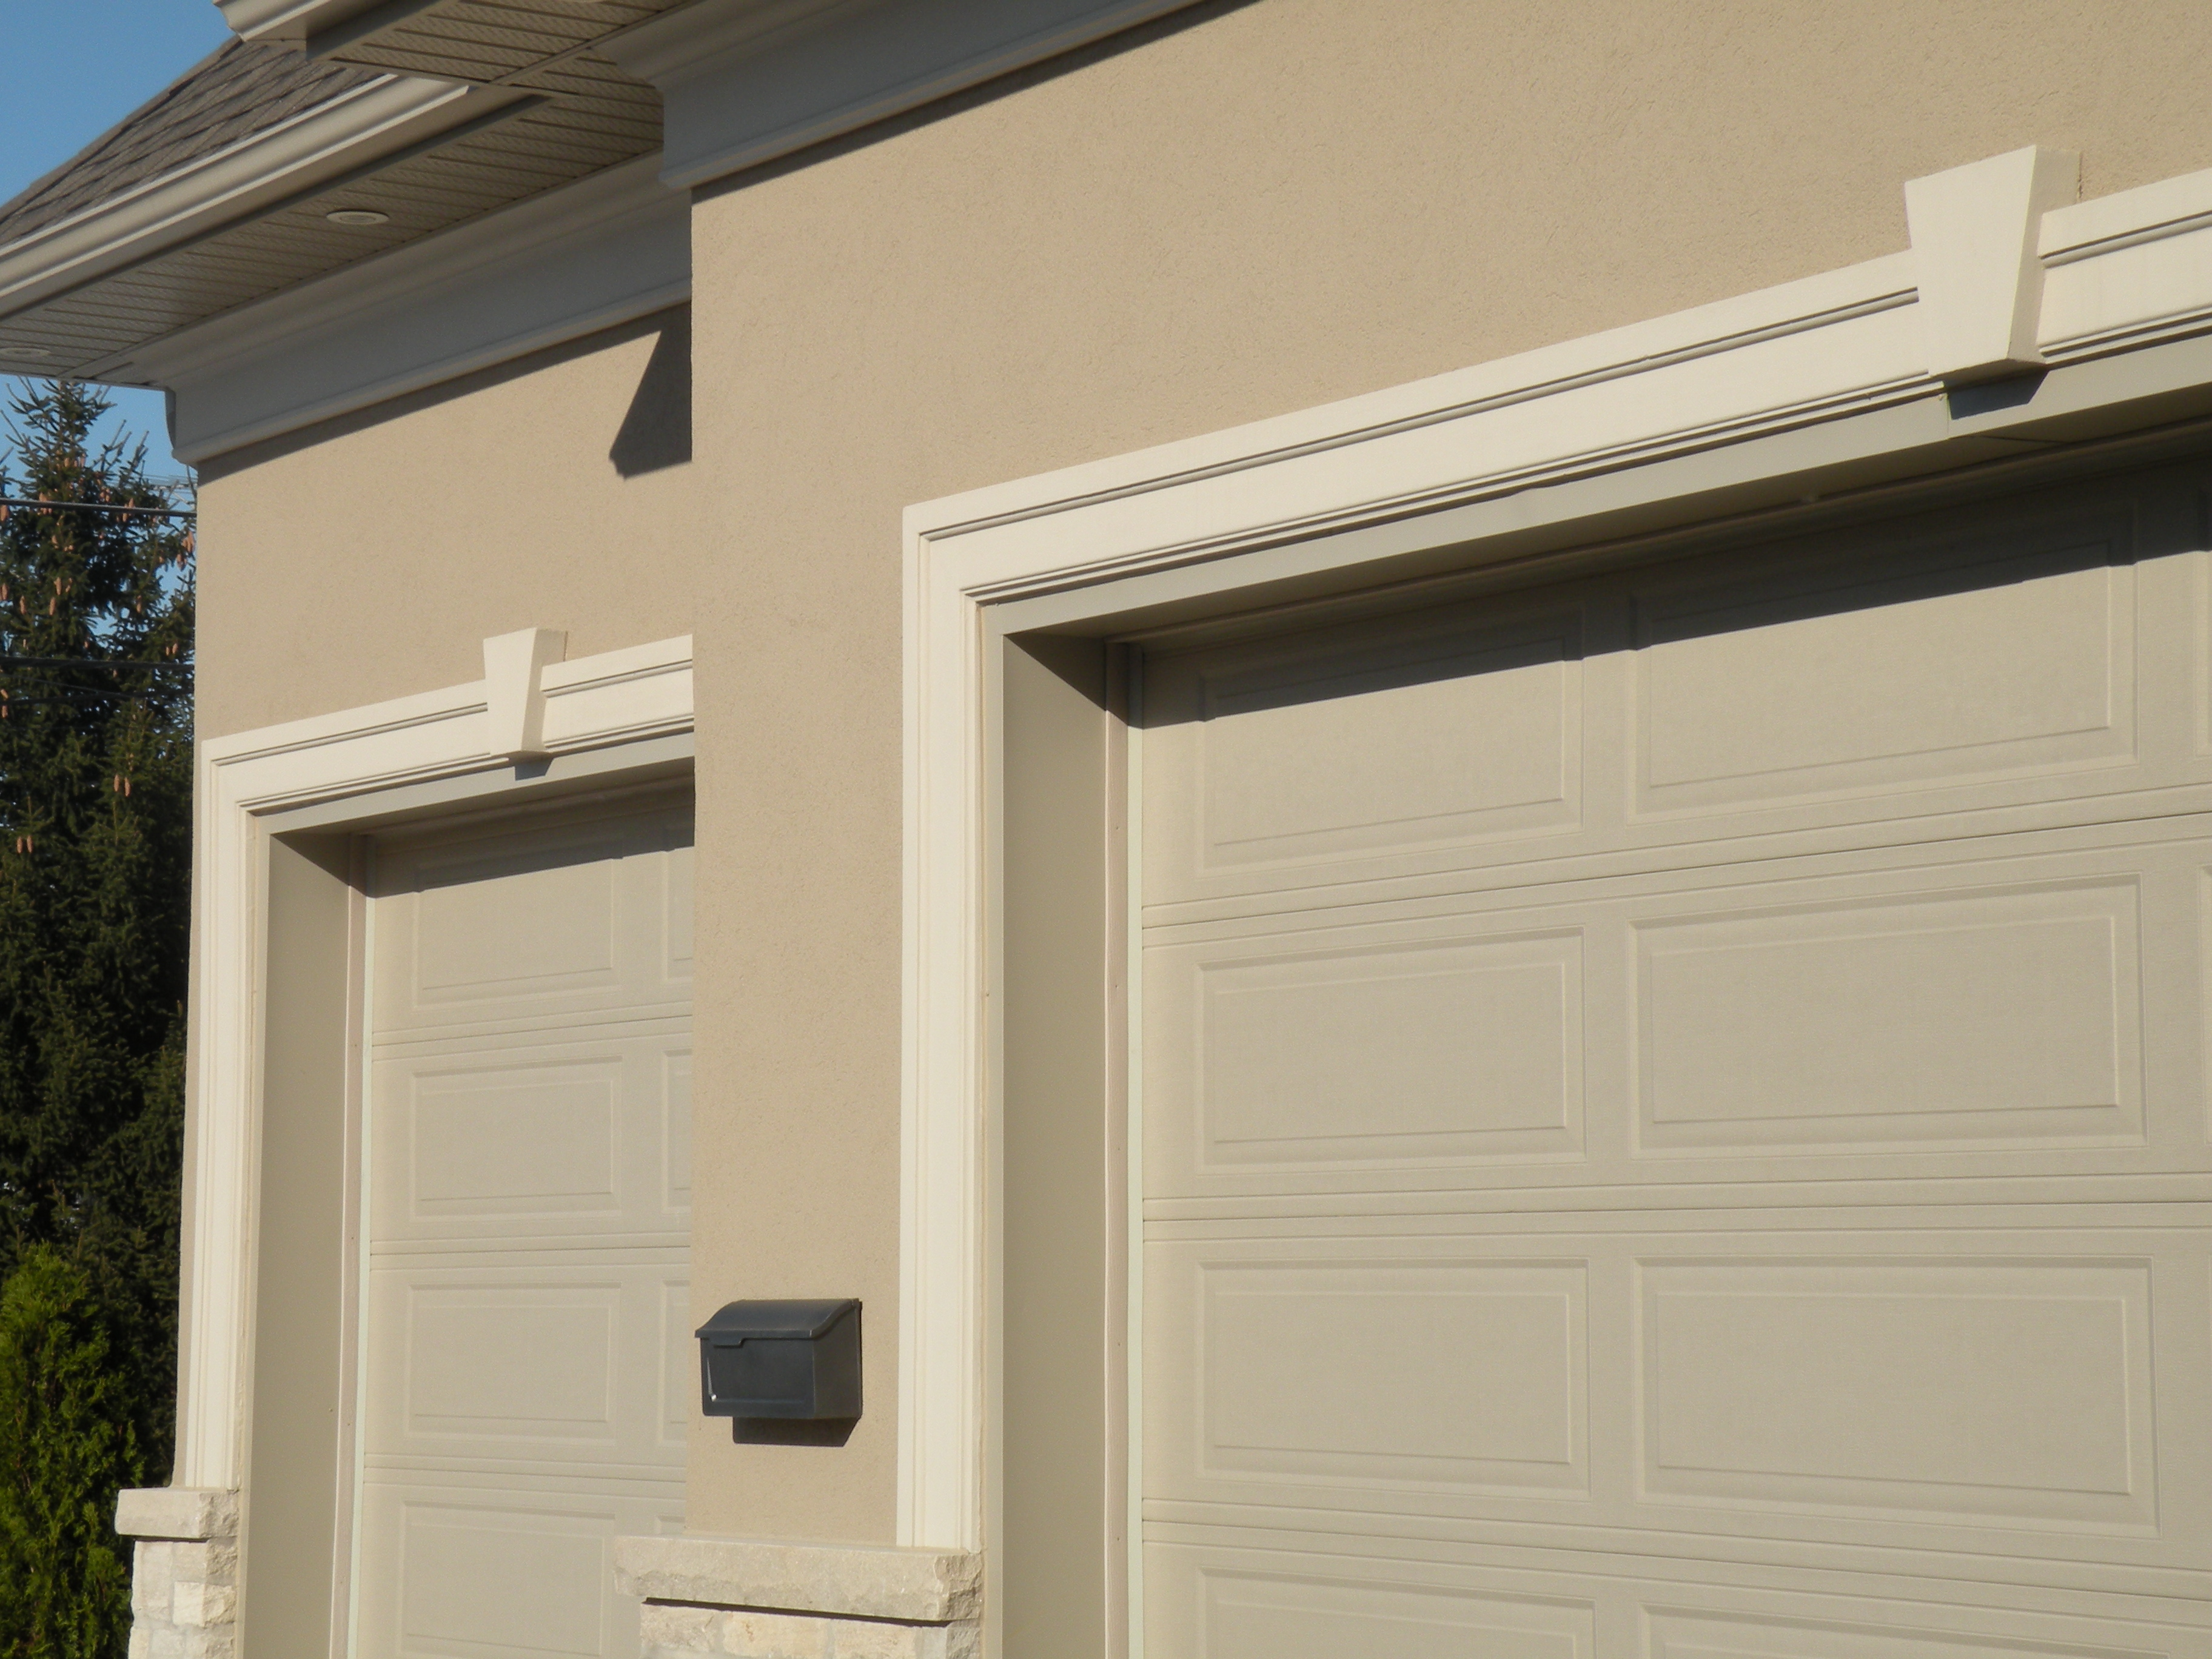 How Much Does Stucco Cost Per Square Foot Toronto